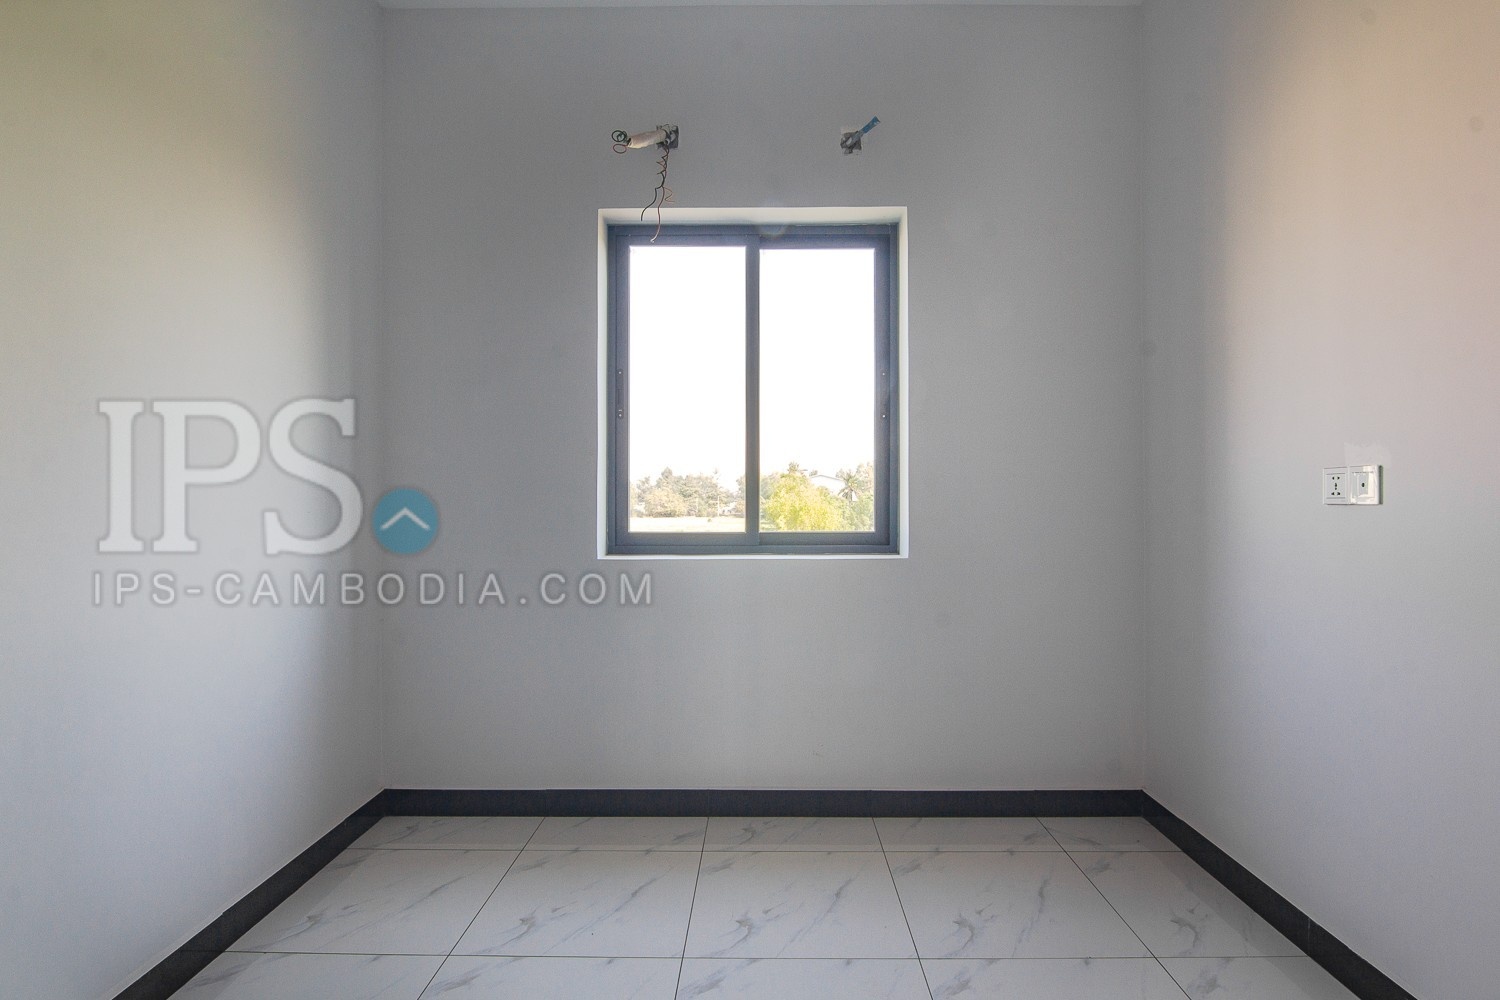 3 Bedroom House  For Rent in Svay Thom, Siem Reap